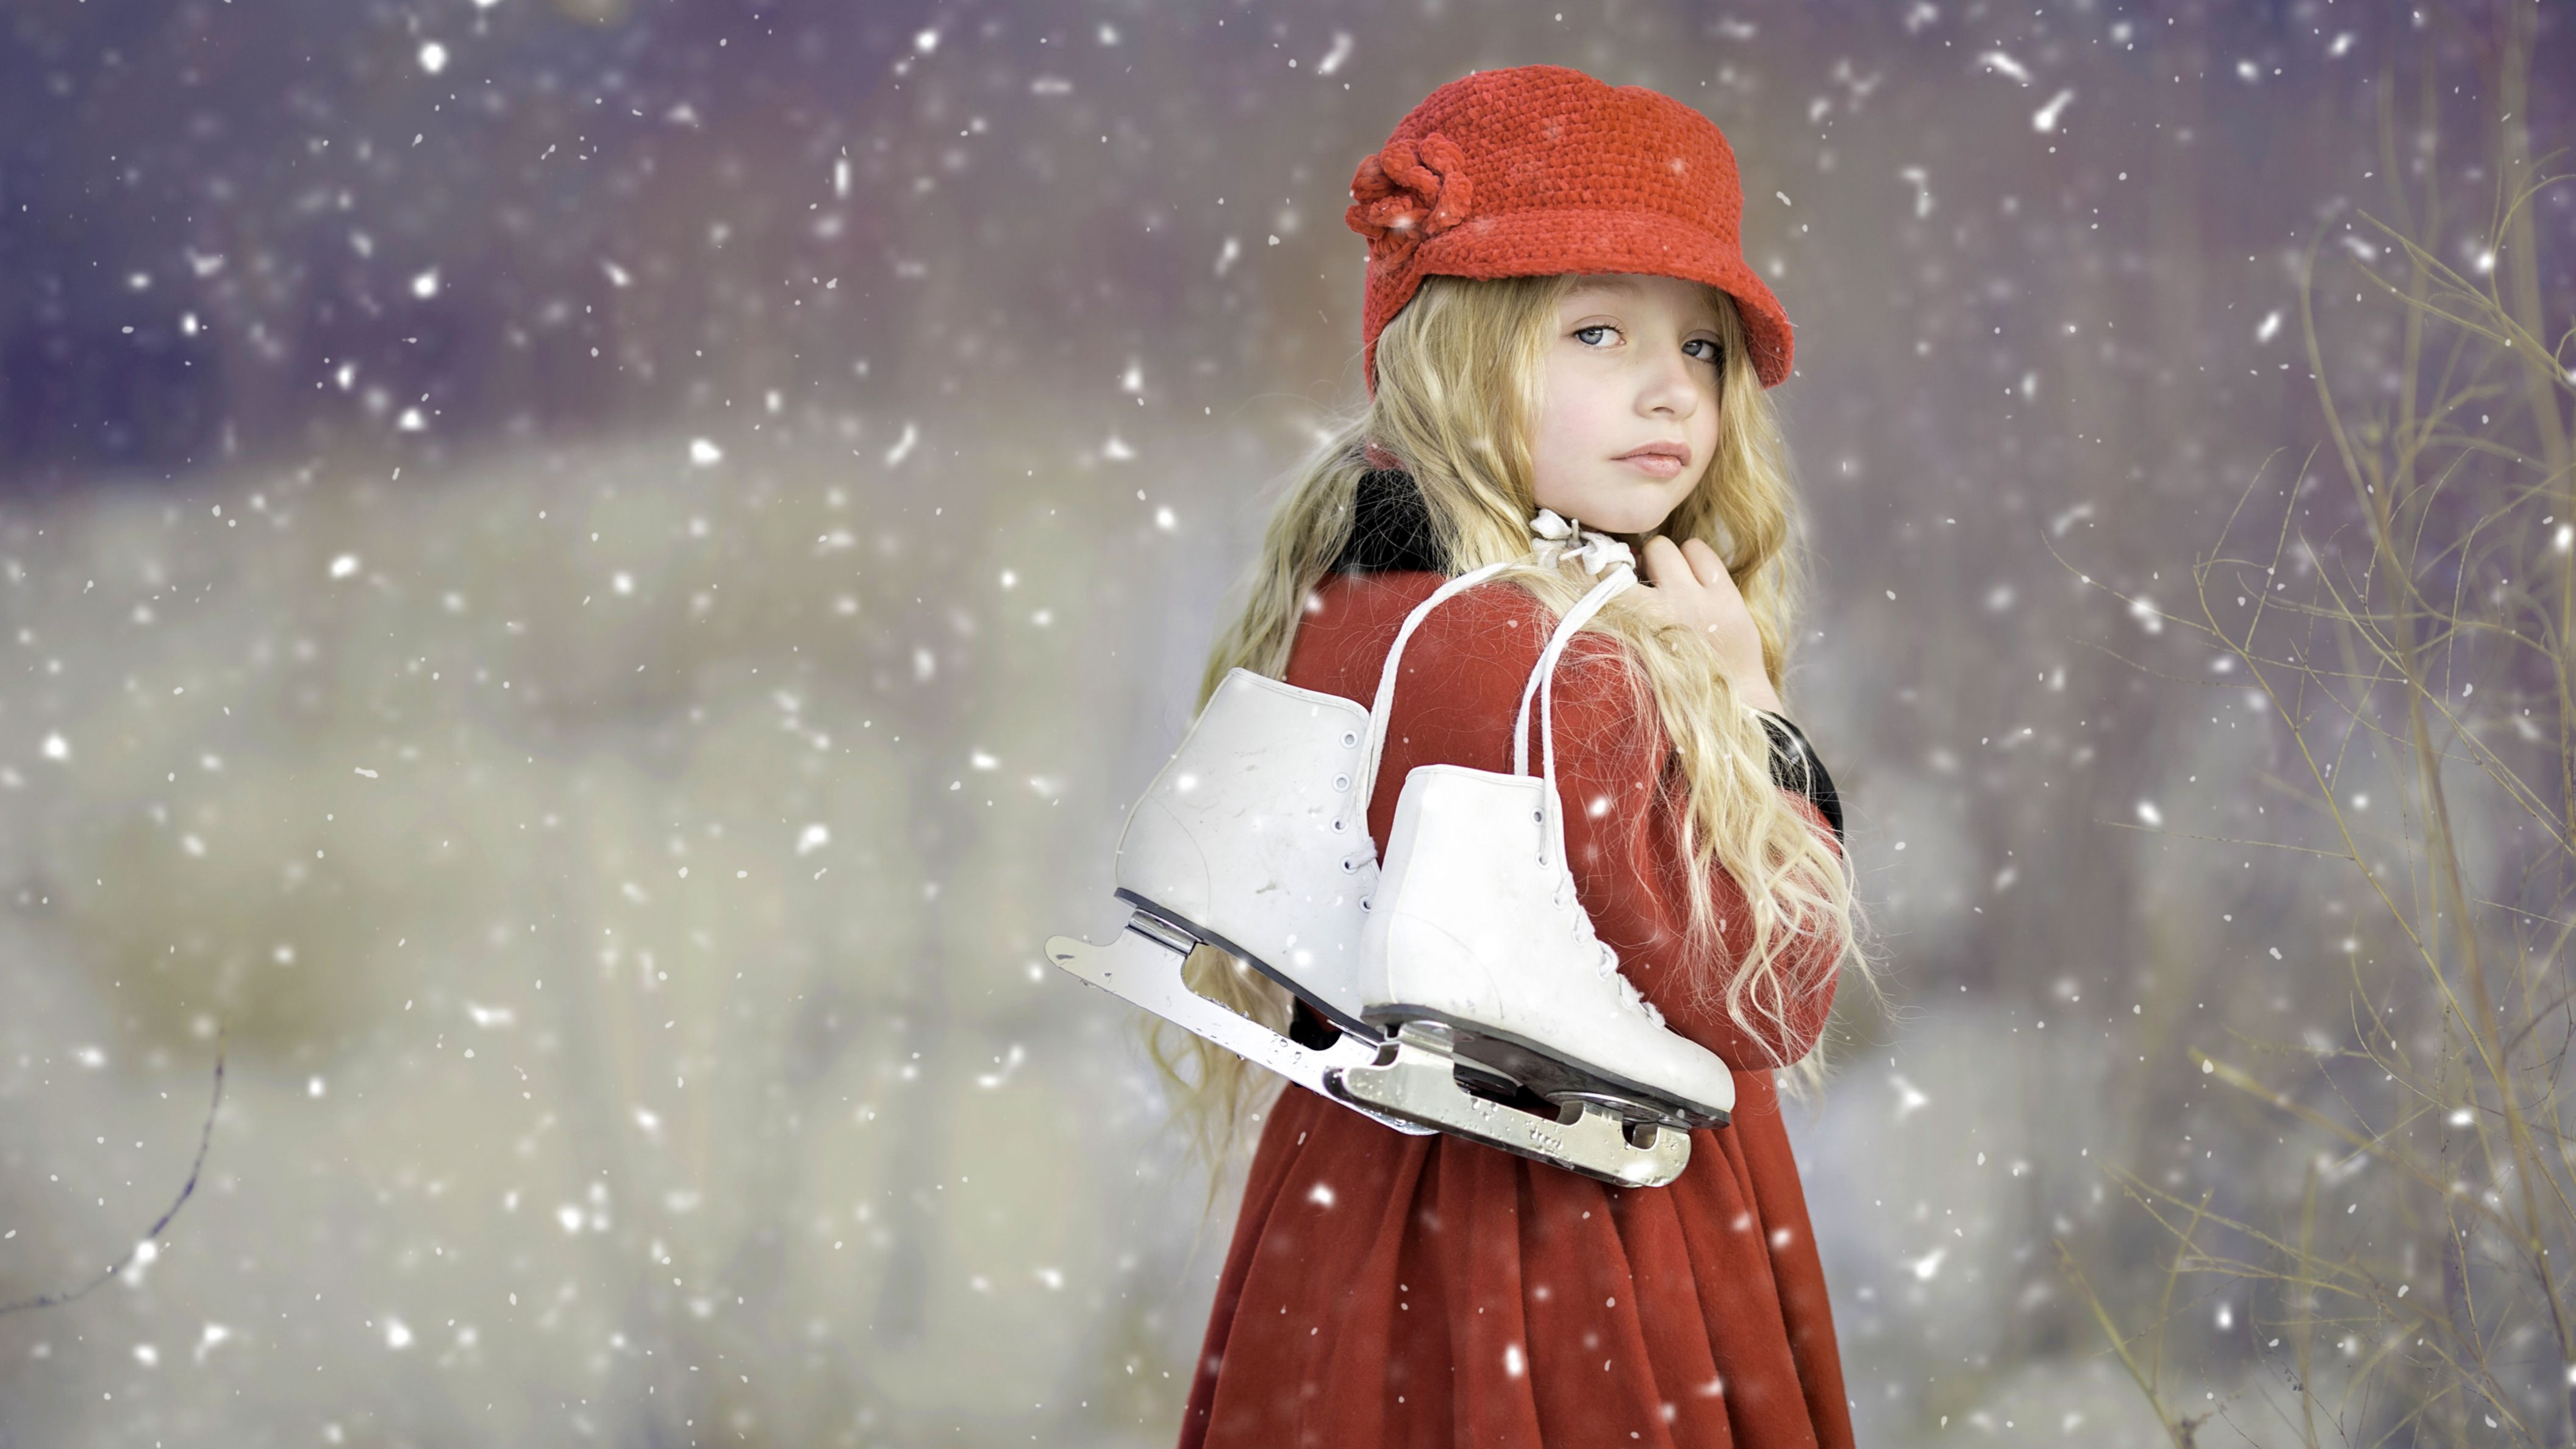 Download free HD Cute Girl Ice Skates HD Wallpaper, image